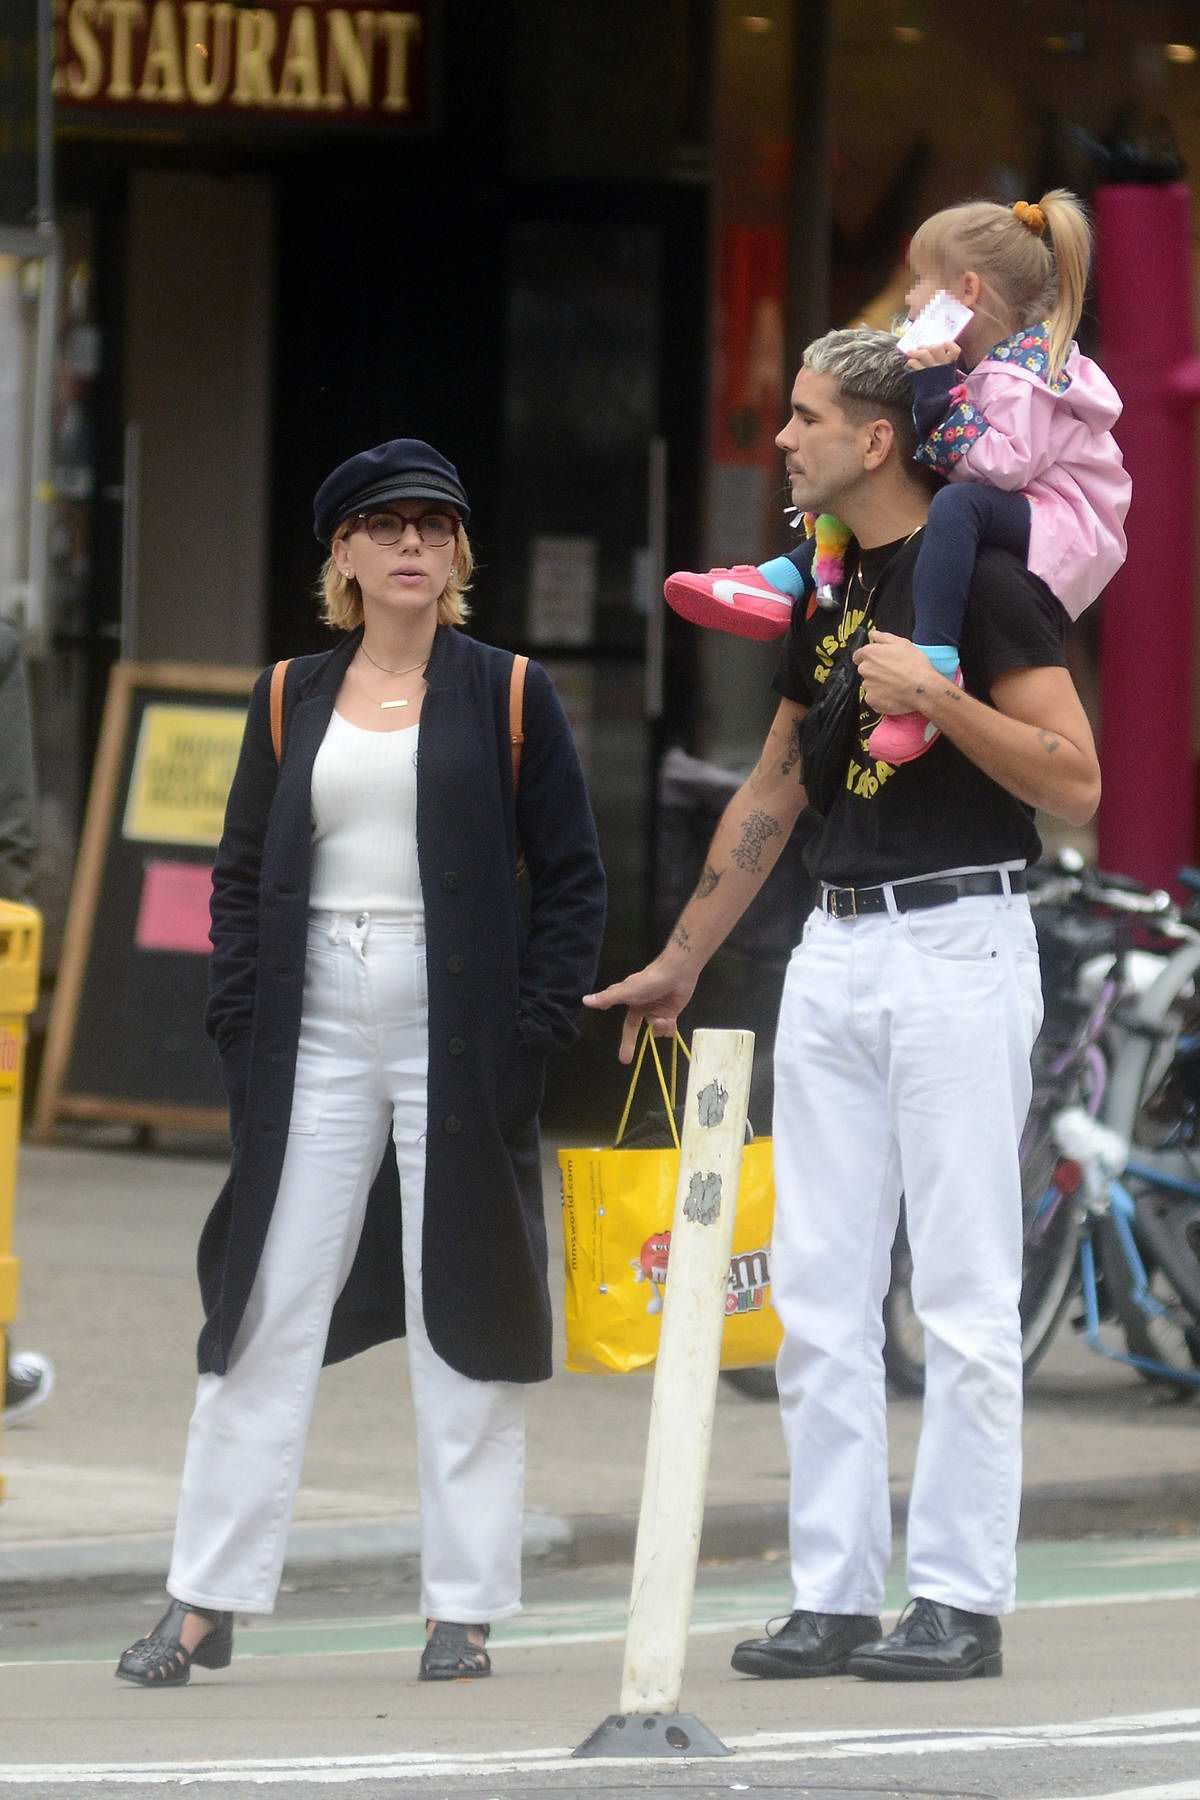 Scarlett Johansson And Romain Dauriac Spotted Together While Out For Lunch With Their Daughter At Veselka